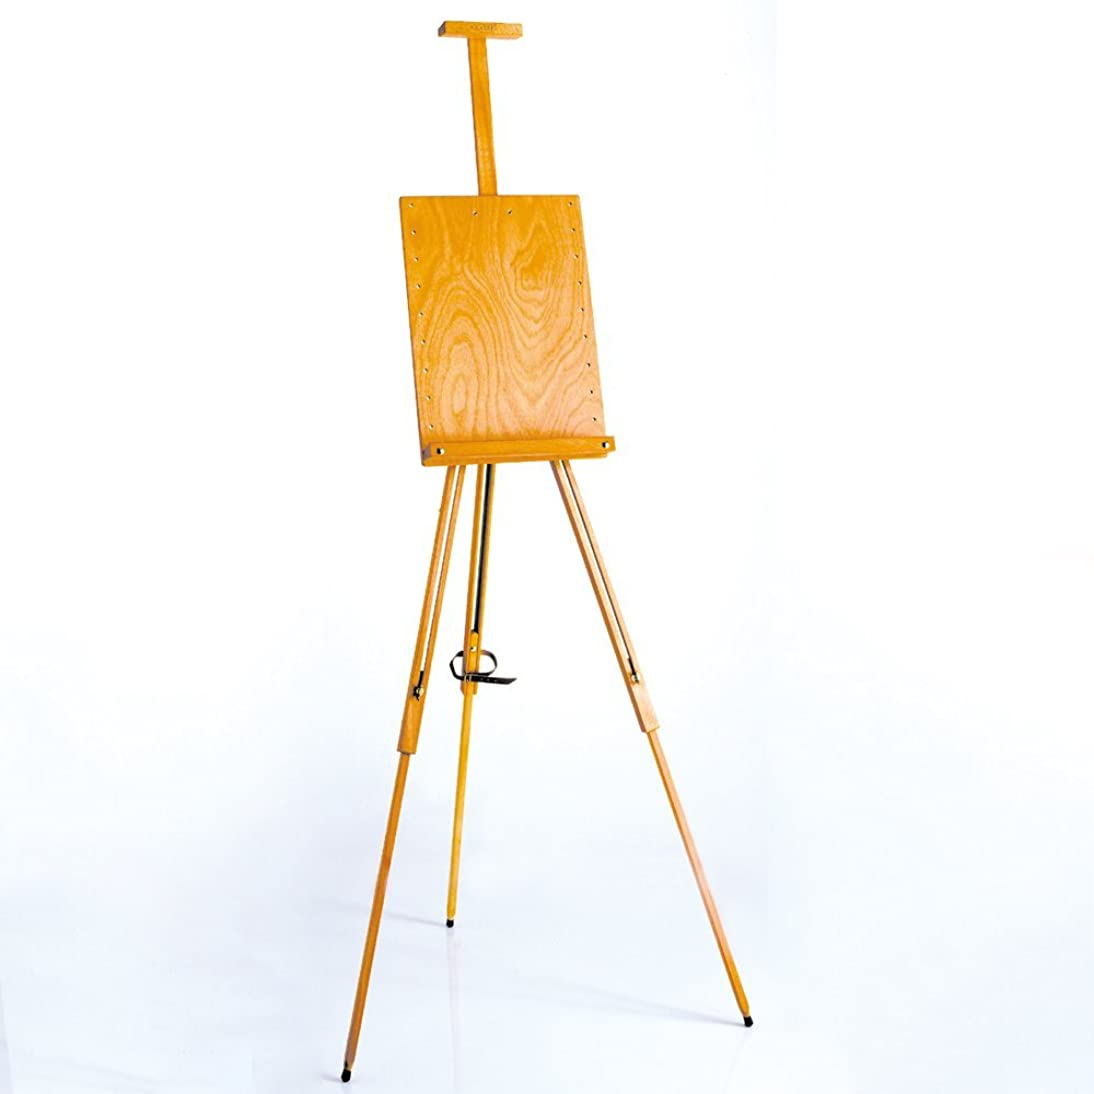 Mabef Folding Multi-Media Field Easel (MBM-26)